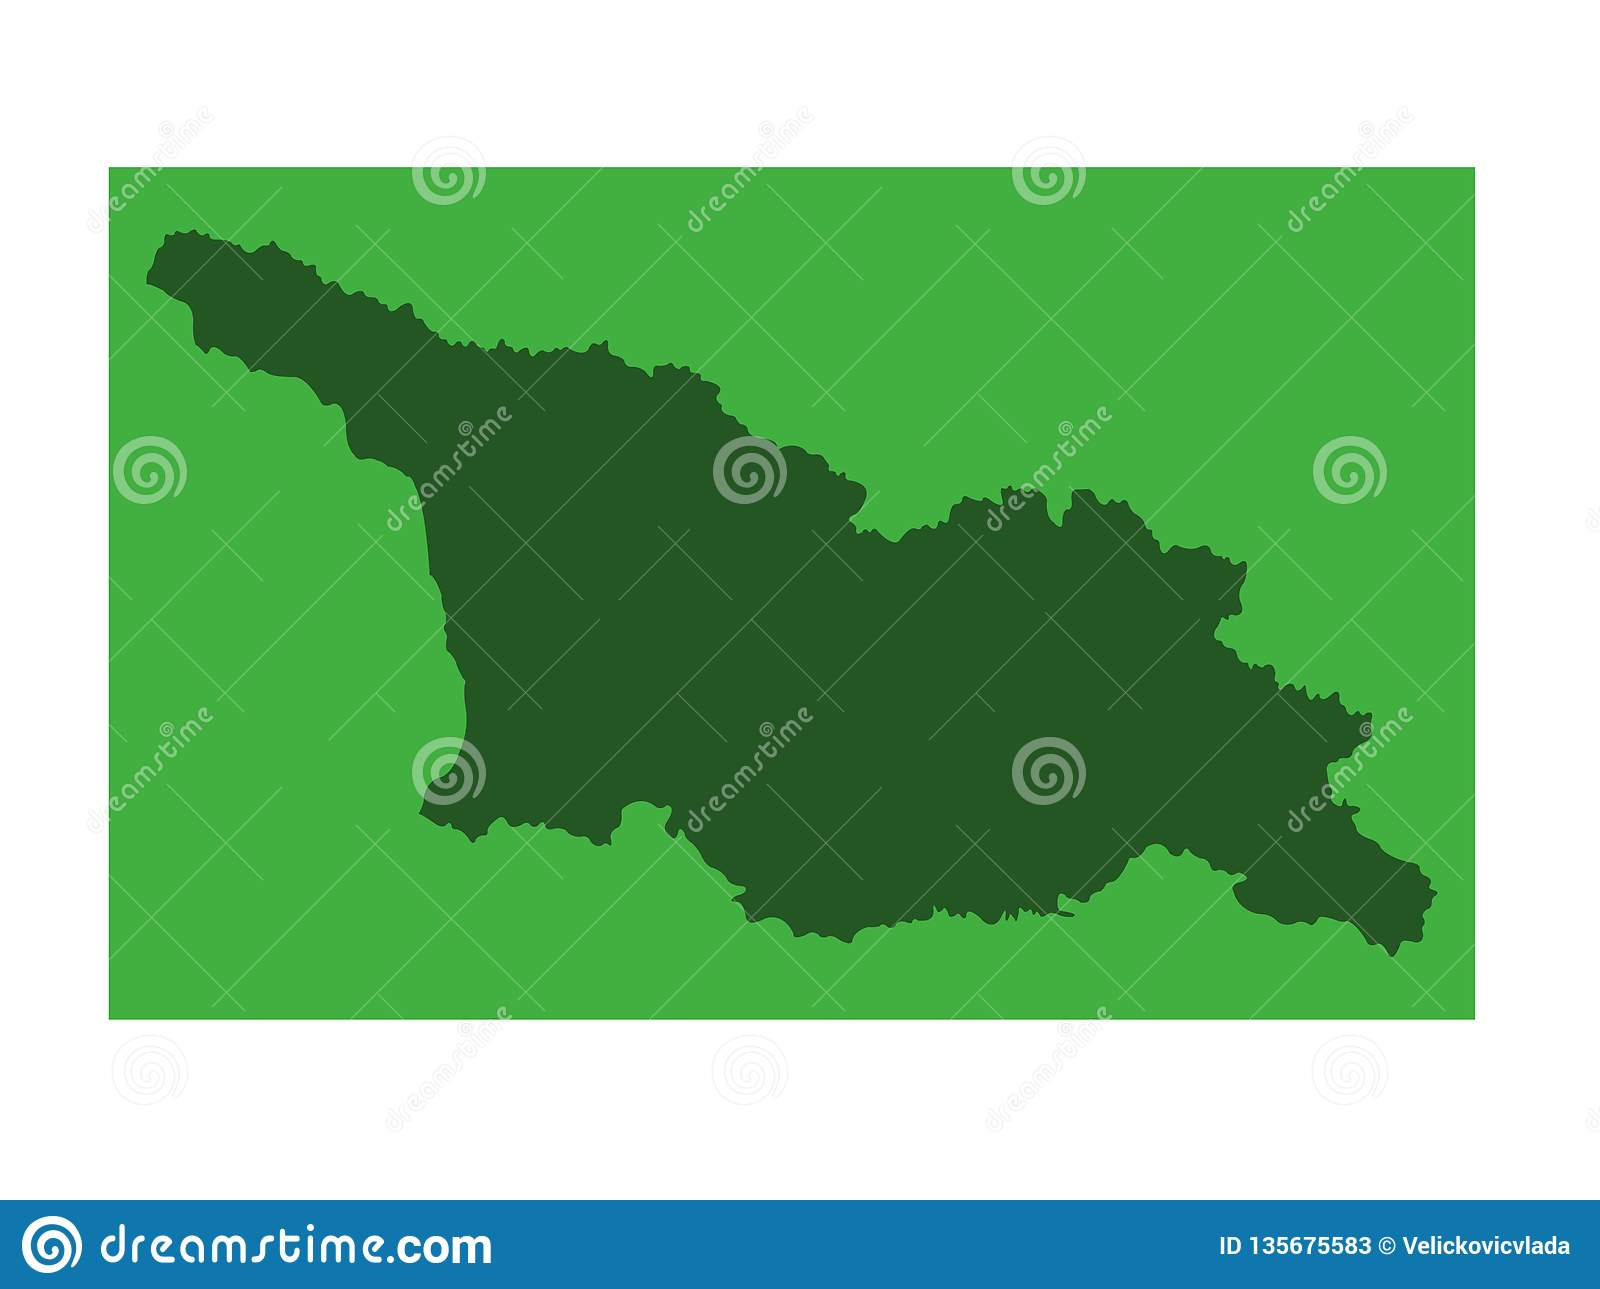 Georgia Country Map - Is A Country In The Caucasus Region Of ... on address in georgia, english in georgia, the map alaska, highway in georgia, history in georgia, buildings in georgia, the map russia, the map tennessee, resources in georgia, the map south carolina, the map washington, the map colorado, silver in georgia, the map new jersey, the map california, home in georgia, the map new hampshire, the map florida, the map indiana, the map pennsylvania,